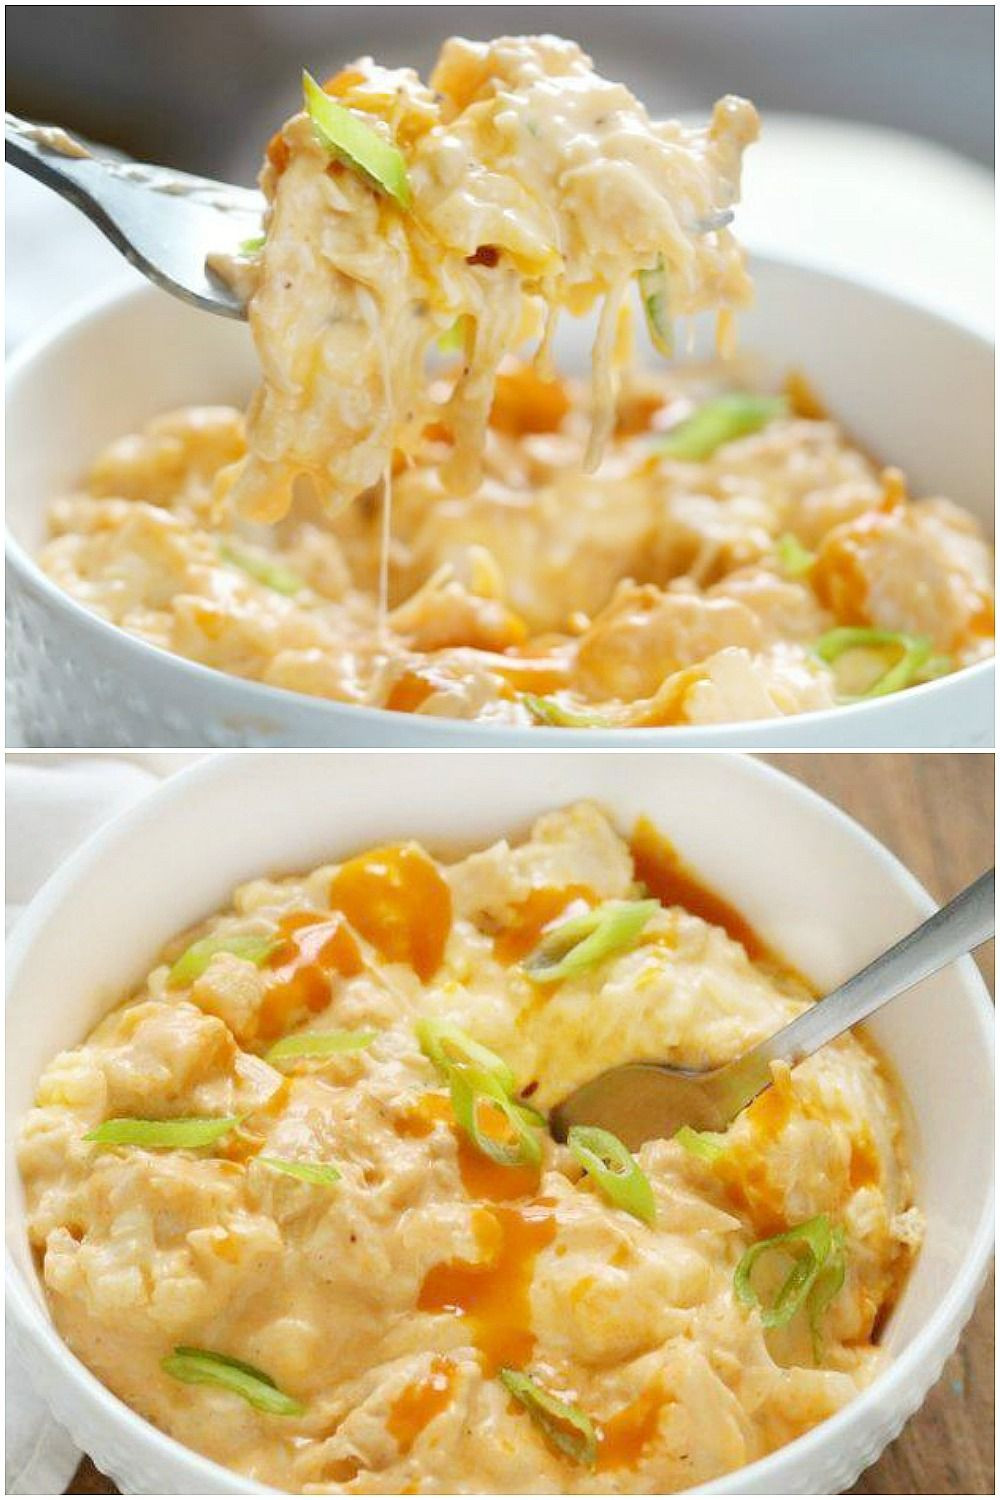 Instant Pot Keto Mac And Cheese  Keto Instant Pot Buffalo Chicken Cauliflower Mac and